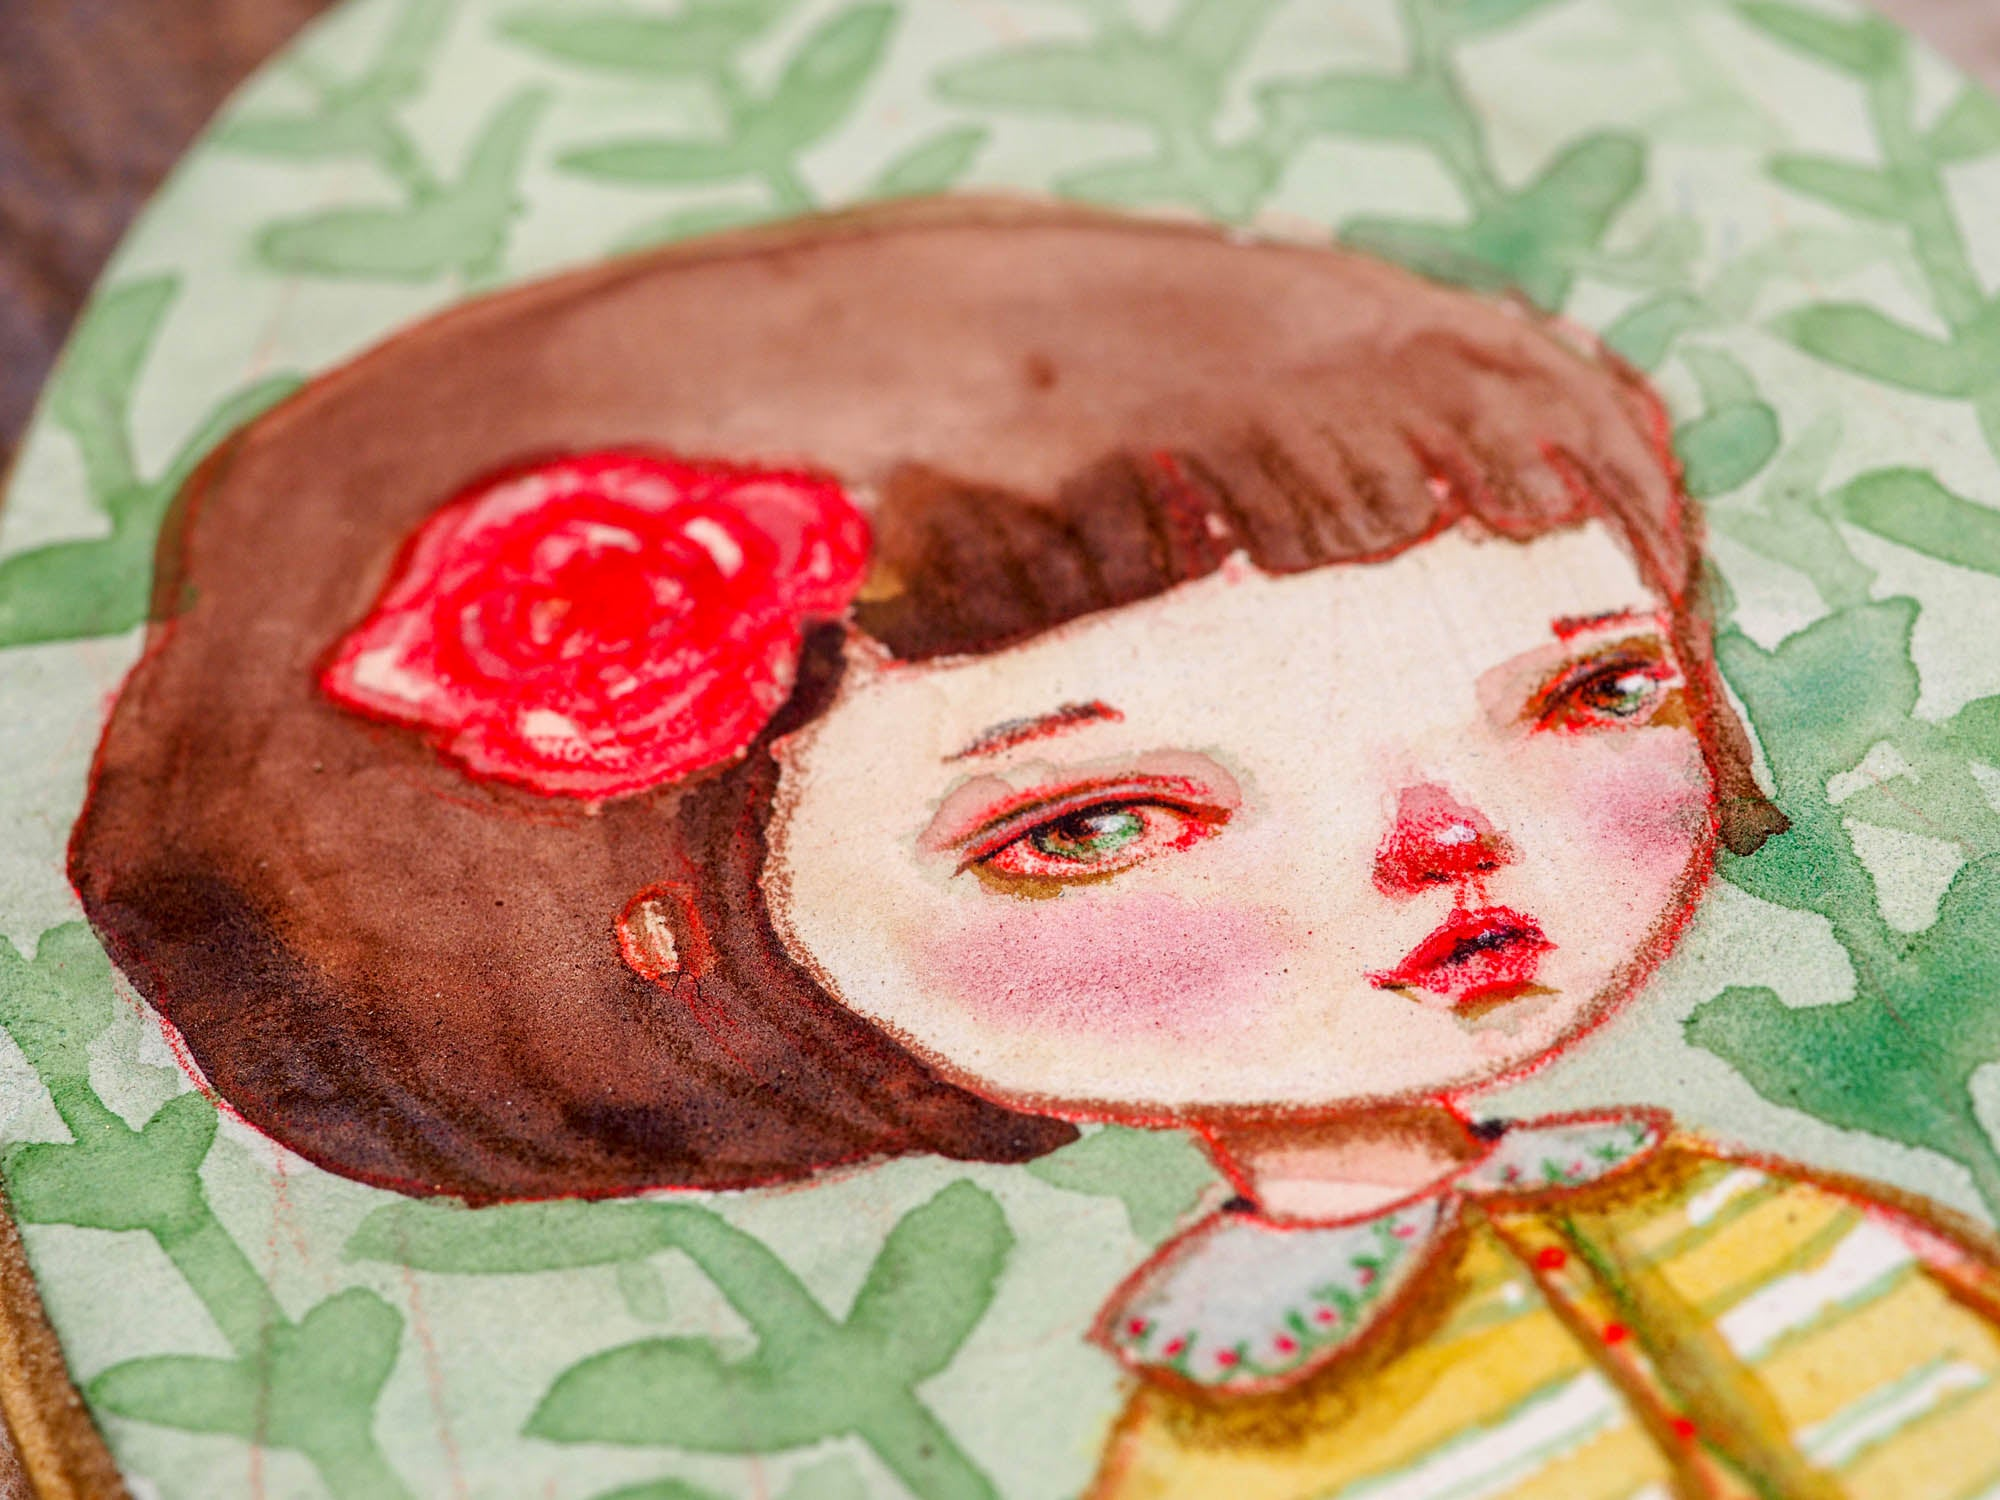 Continuing with Danita's series of watercolor portraits in wood, I painted this beautiful brunette with a red rose in her hair.  The painting measures 5 x 3 inches on a wood panel, painted using saturated watercolor pigments and my signature melancholic eyes on her face.  She has a friend you can adopt too!